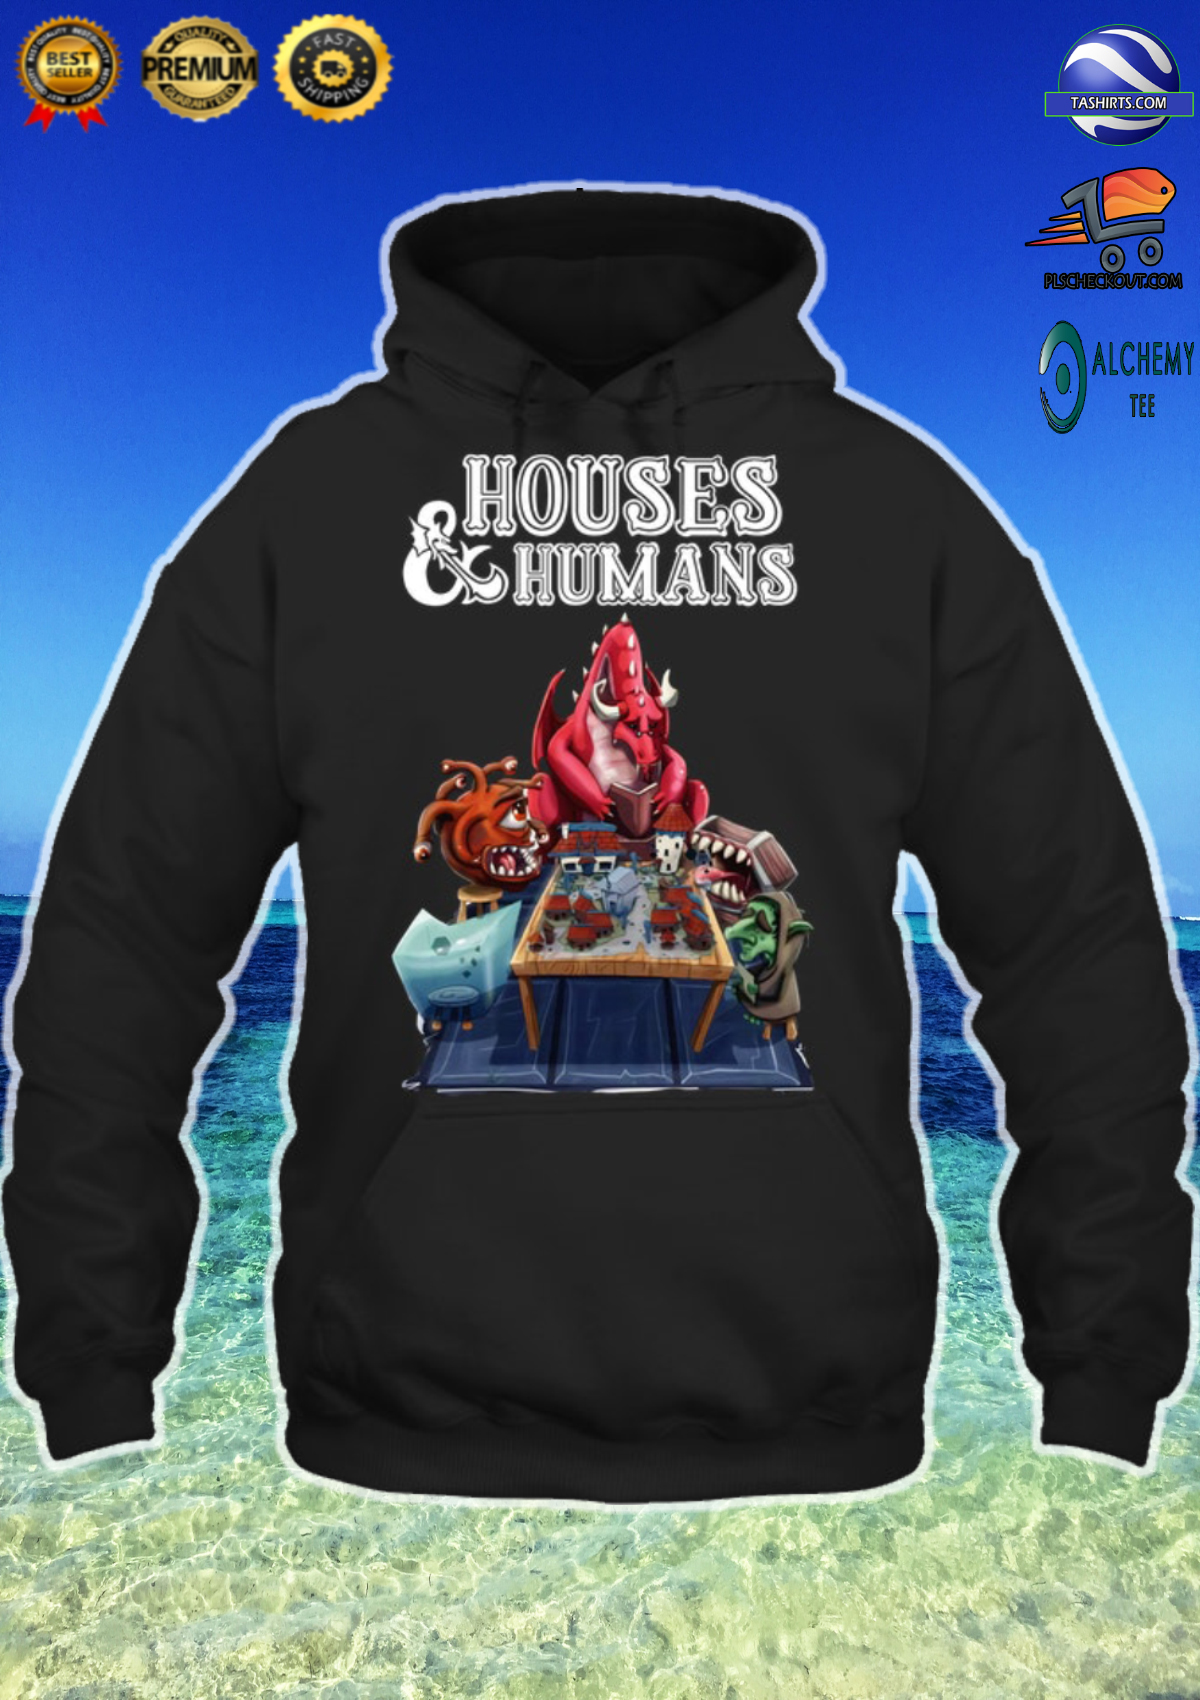 Houses and humans shirt, hoodie and tank top